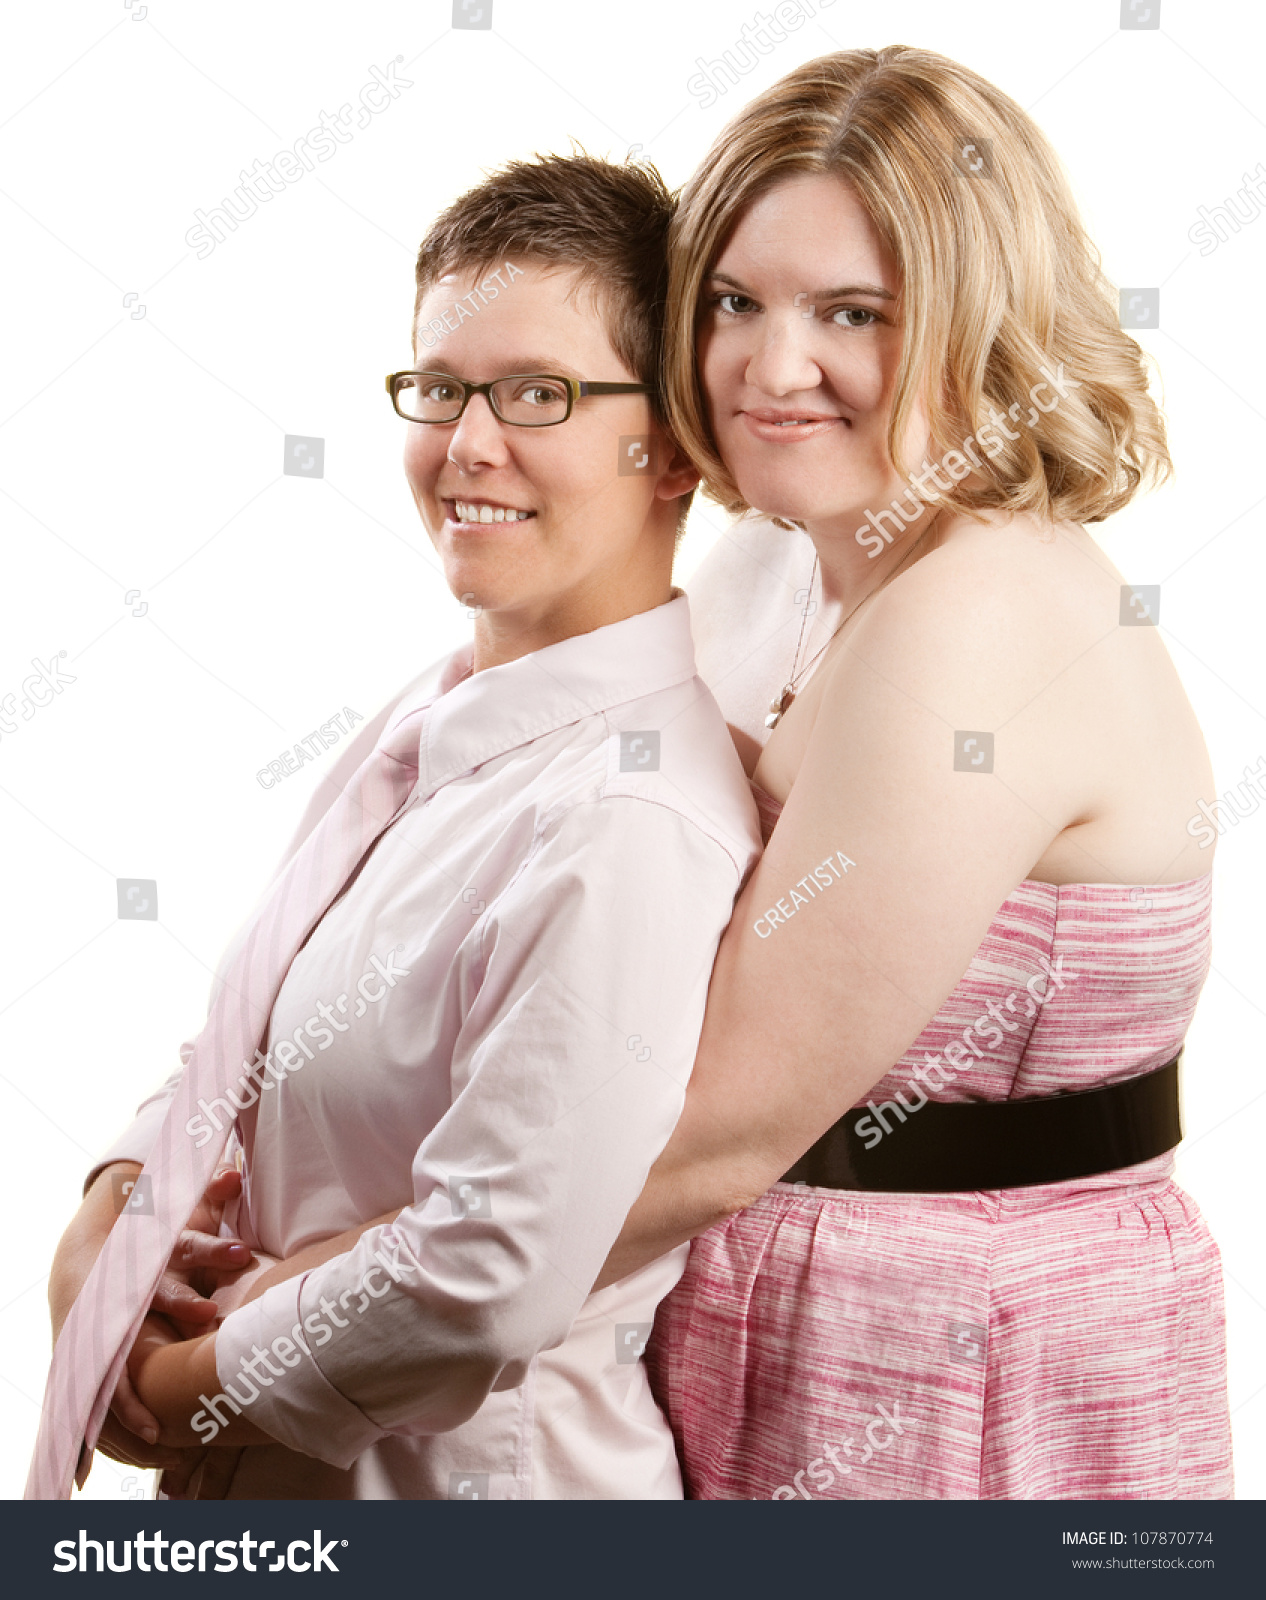 Caucasian Lesbian Couple Embracing Over White Background